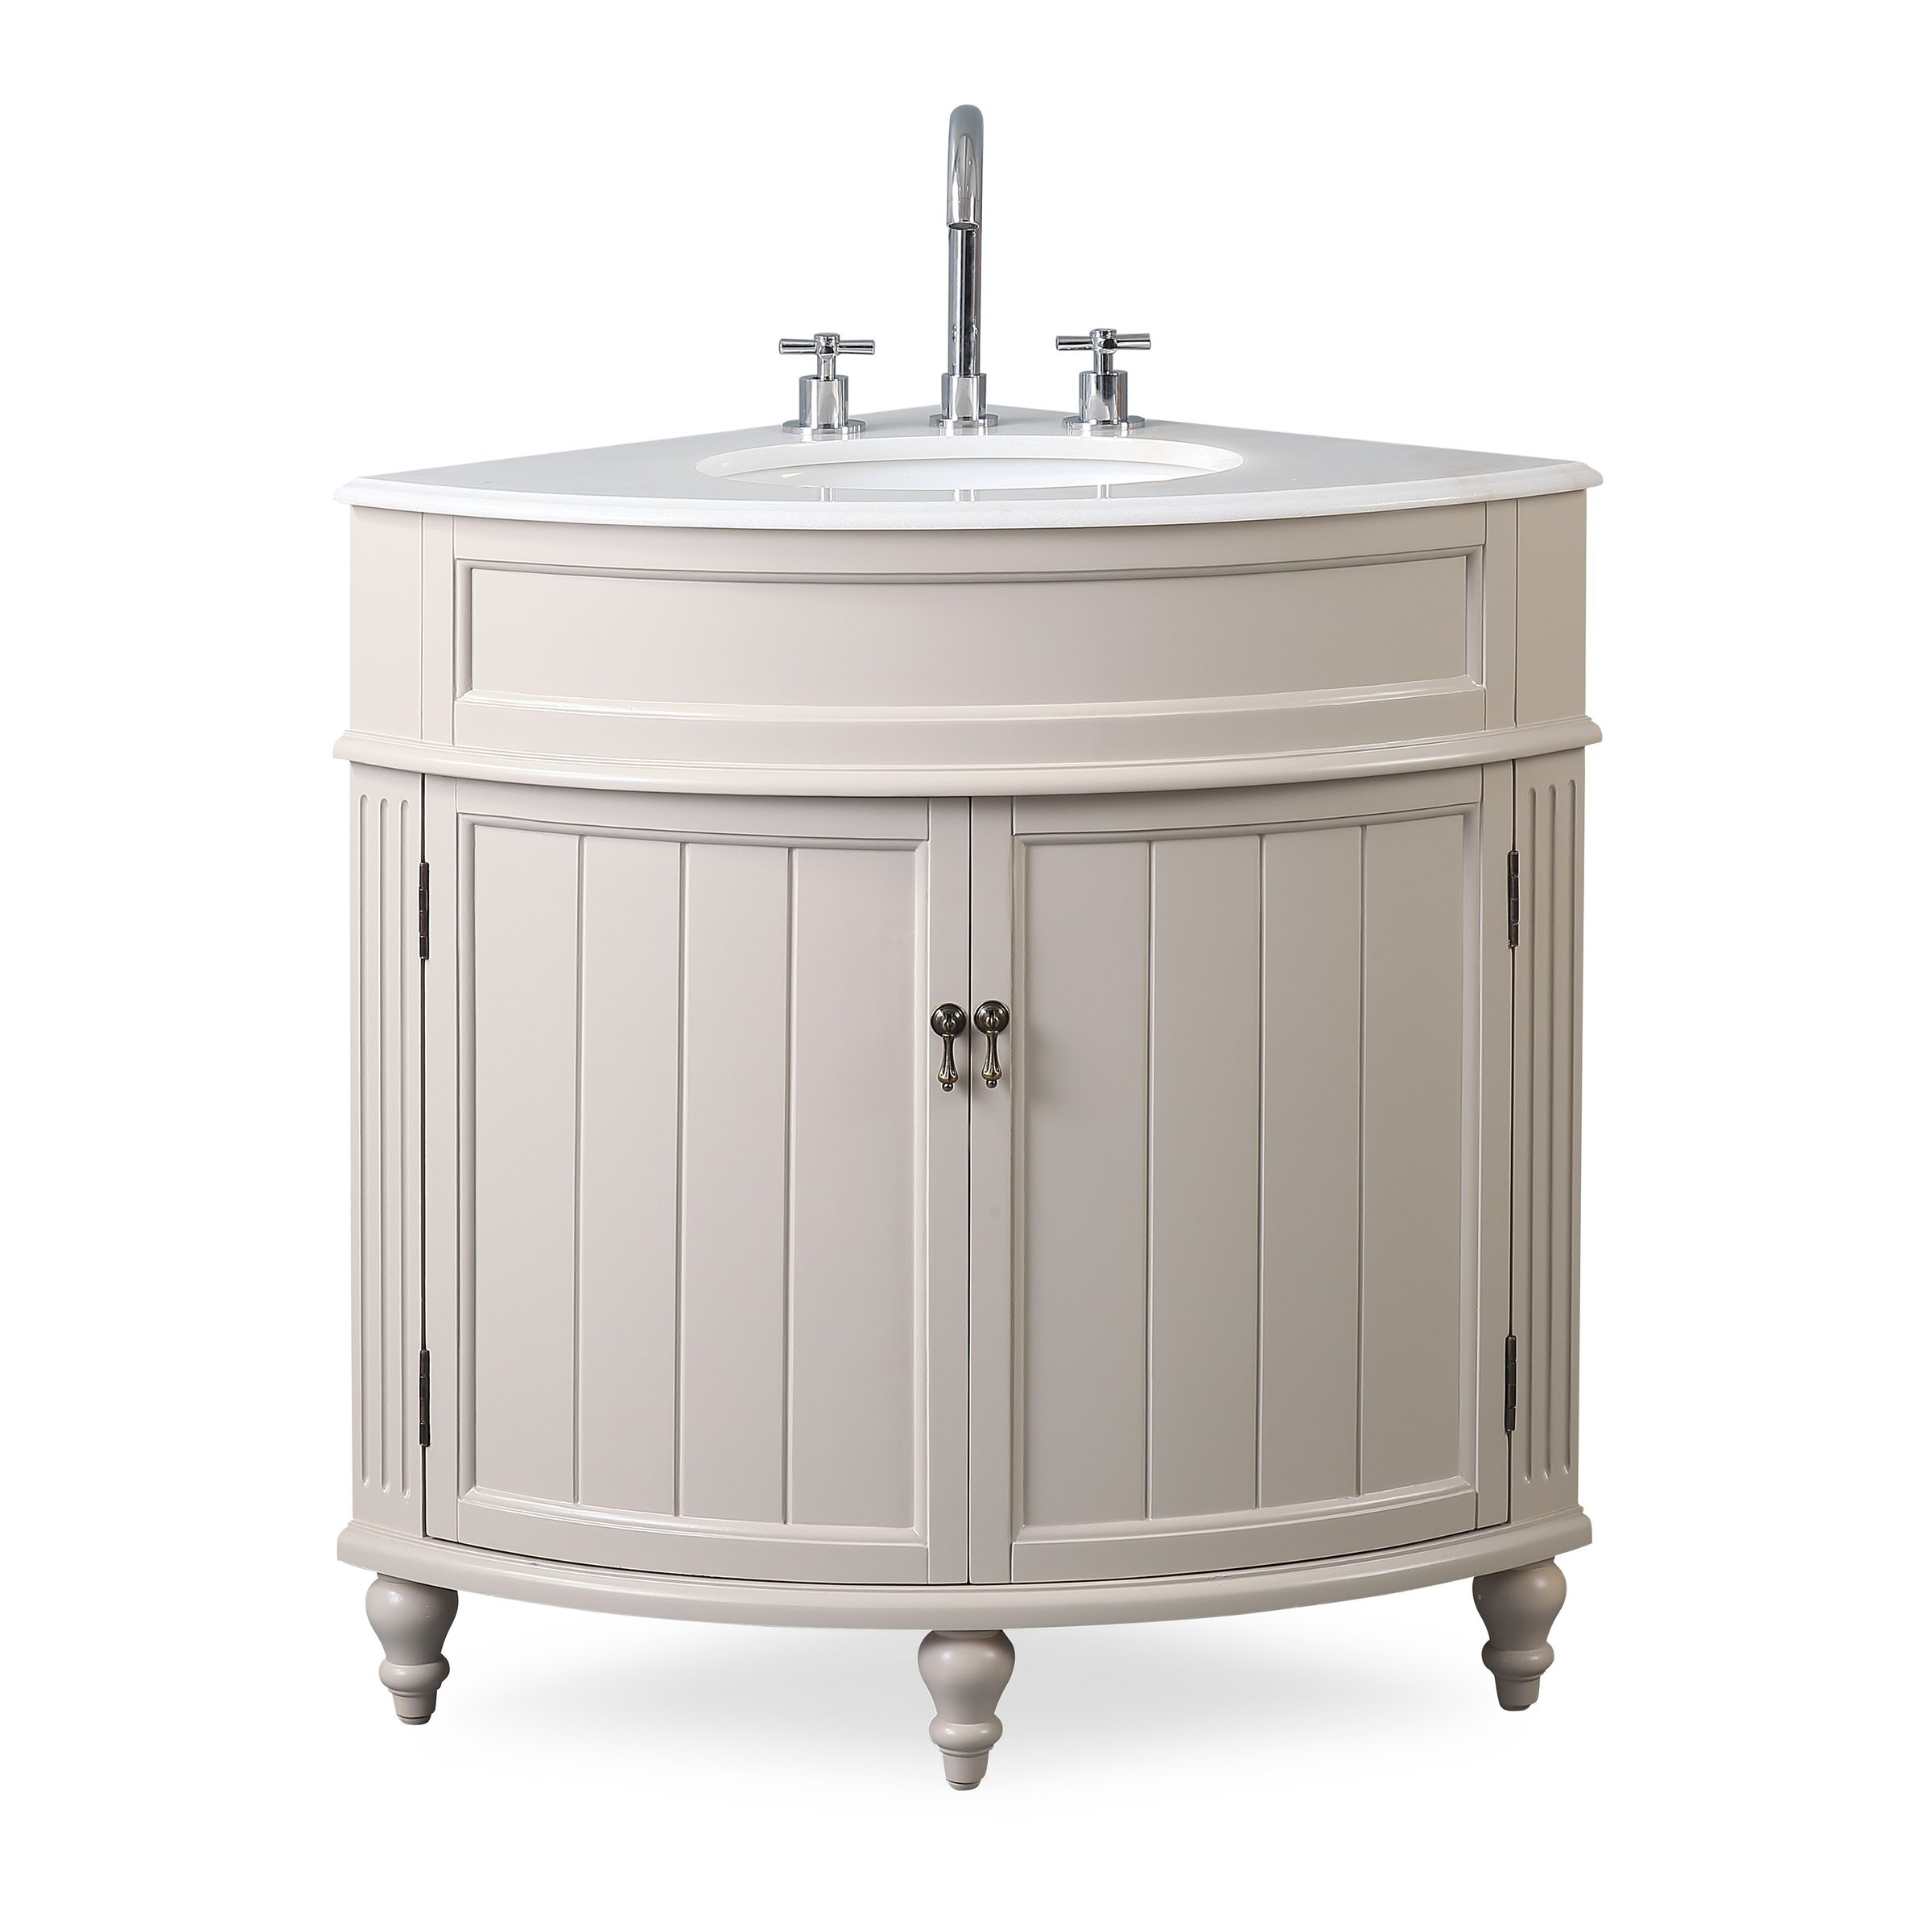 Corner Bathroom Vanities You Ll Love In 2021 Wayfair Ca